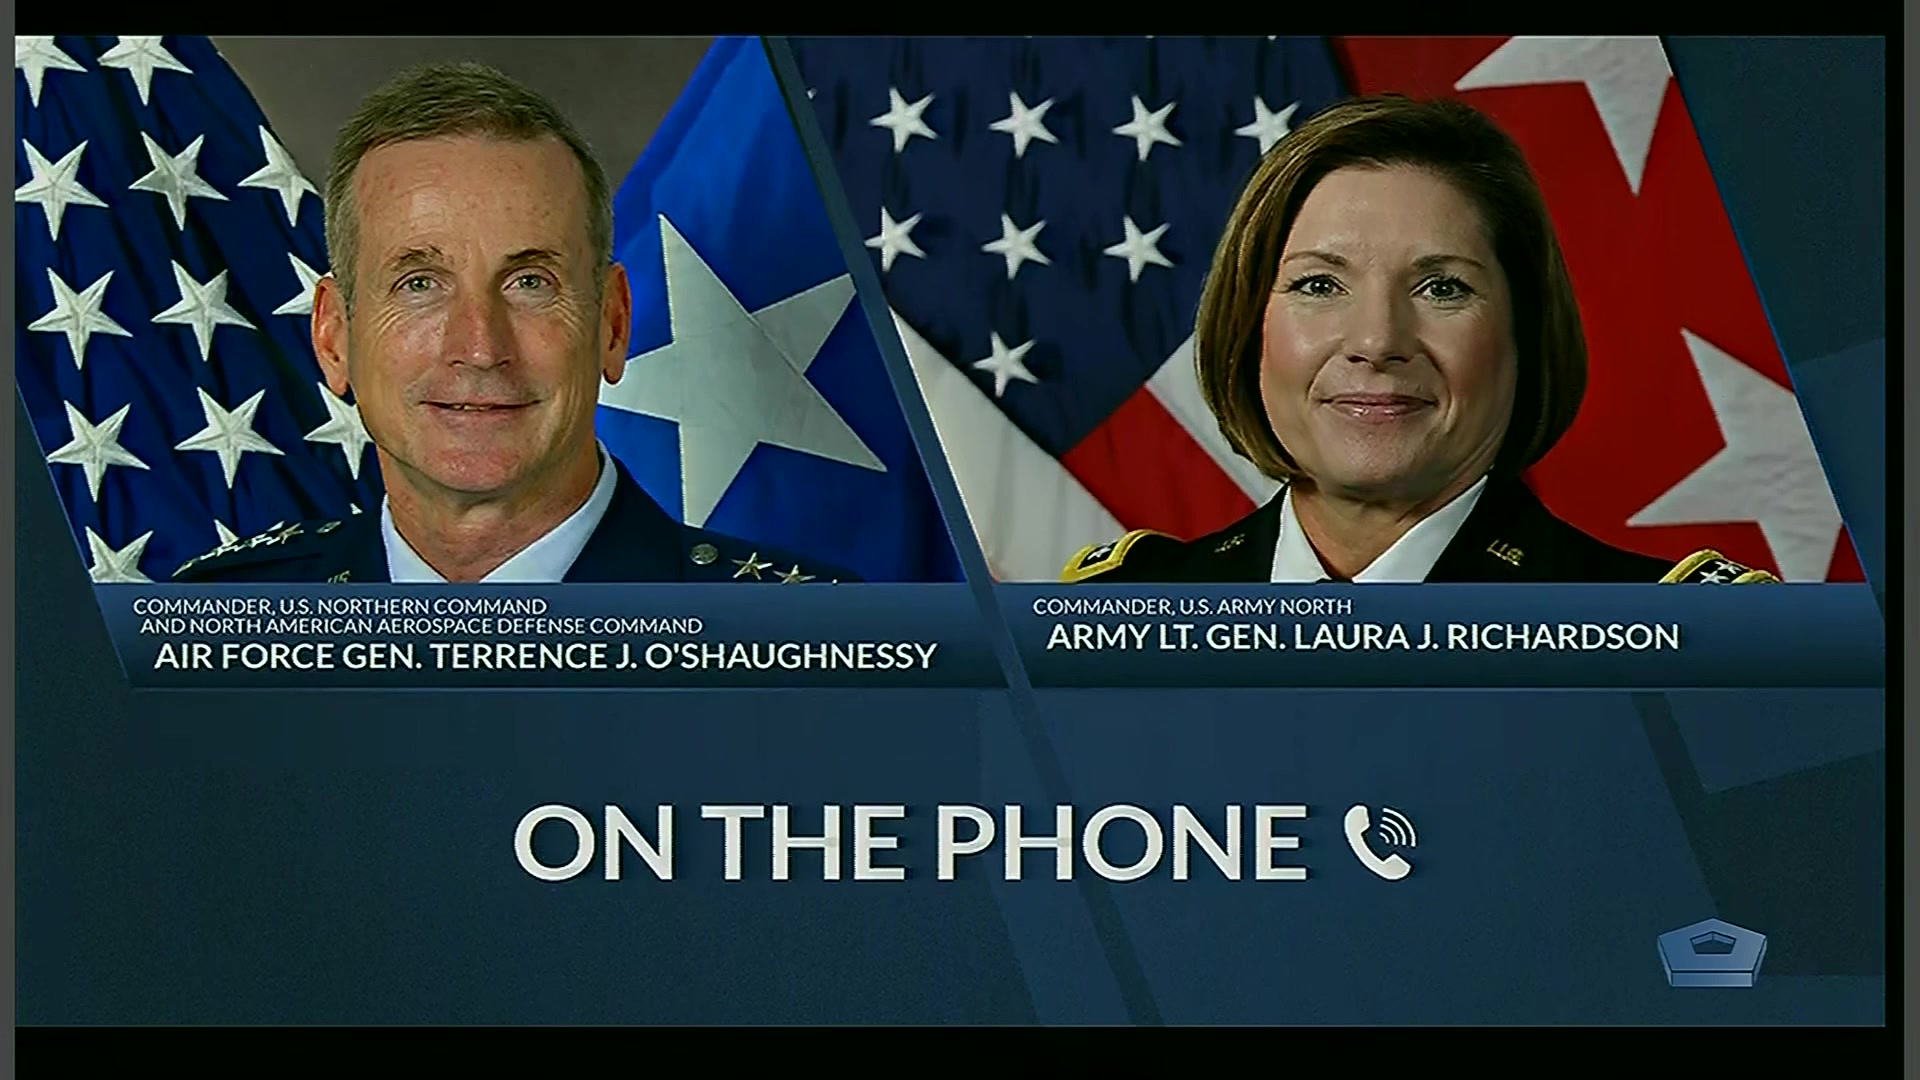 Air Force Gen. Terrence J. O'Shaughnessy, commander of U.S. Northern Command, and Army Lt. Gen. Laura J. Richardson, commander of U.S. Army North, brief reporters at the Pentagon via telephone, April 21, 2020.